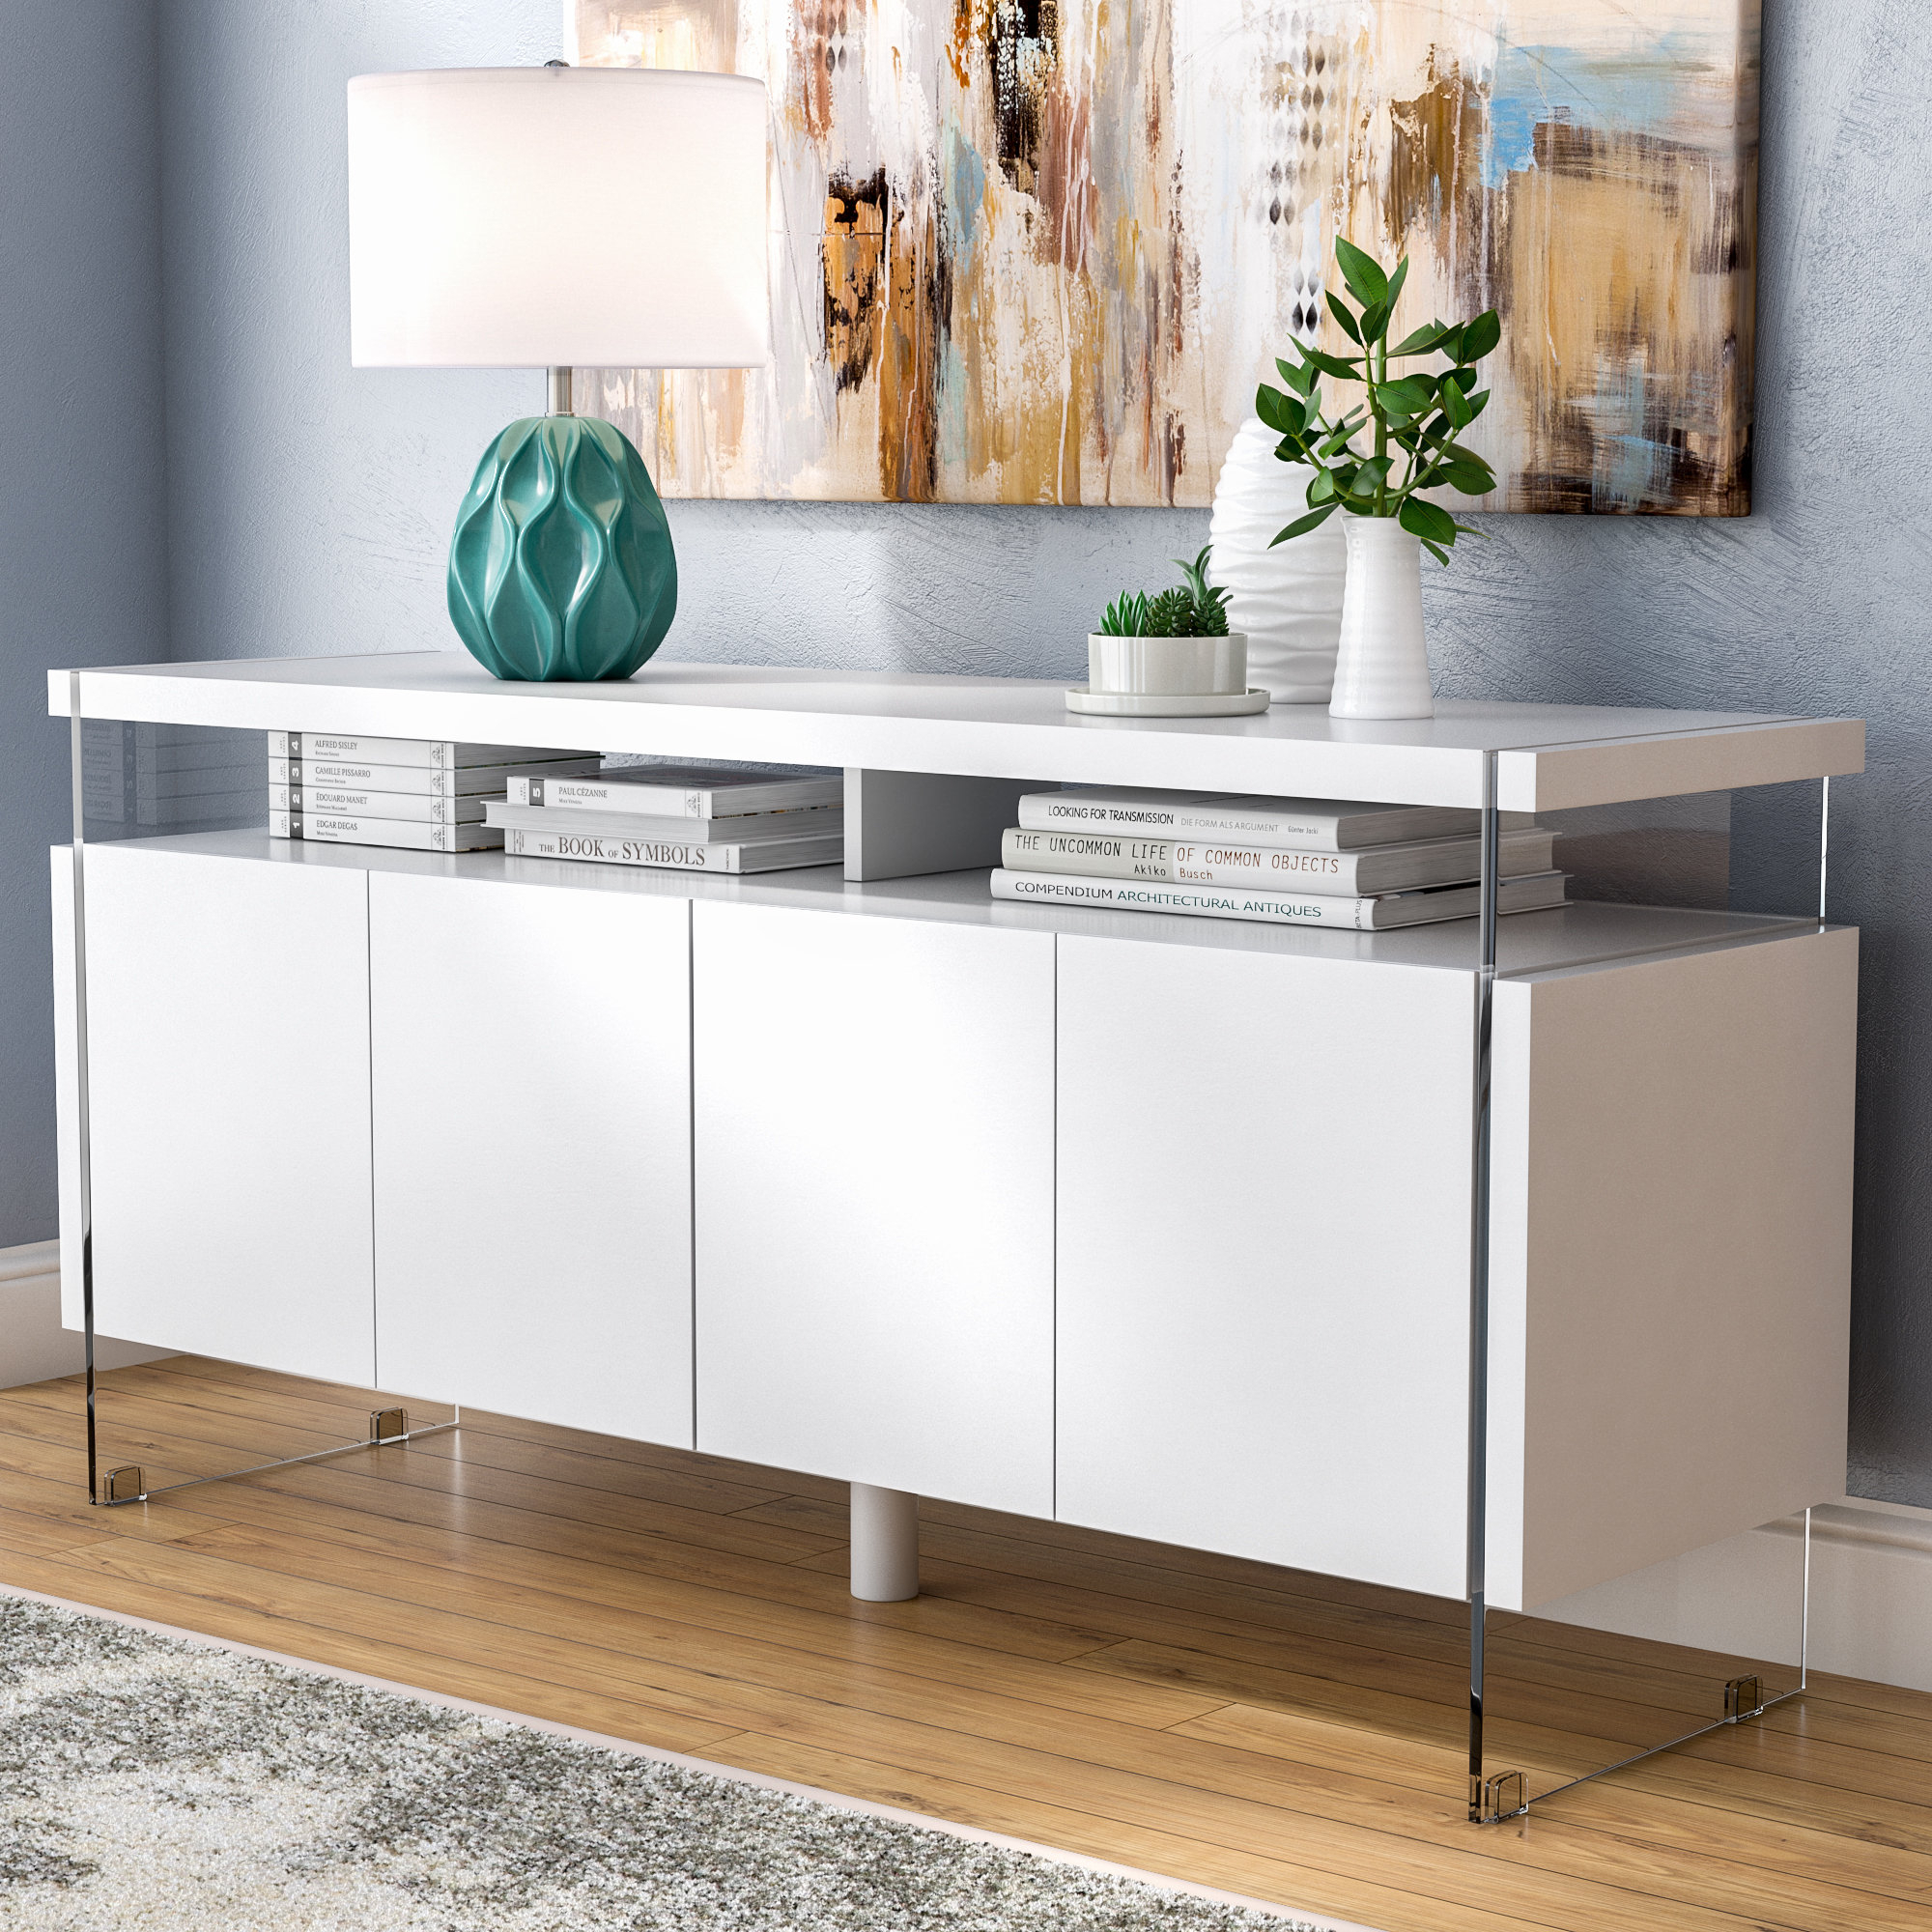 4 Door Credenza You'll Love In 2019 | Wayfair Intended For Steinhatchee Reclaimed Pine 4 Door Sideboards (View 1 of 30)